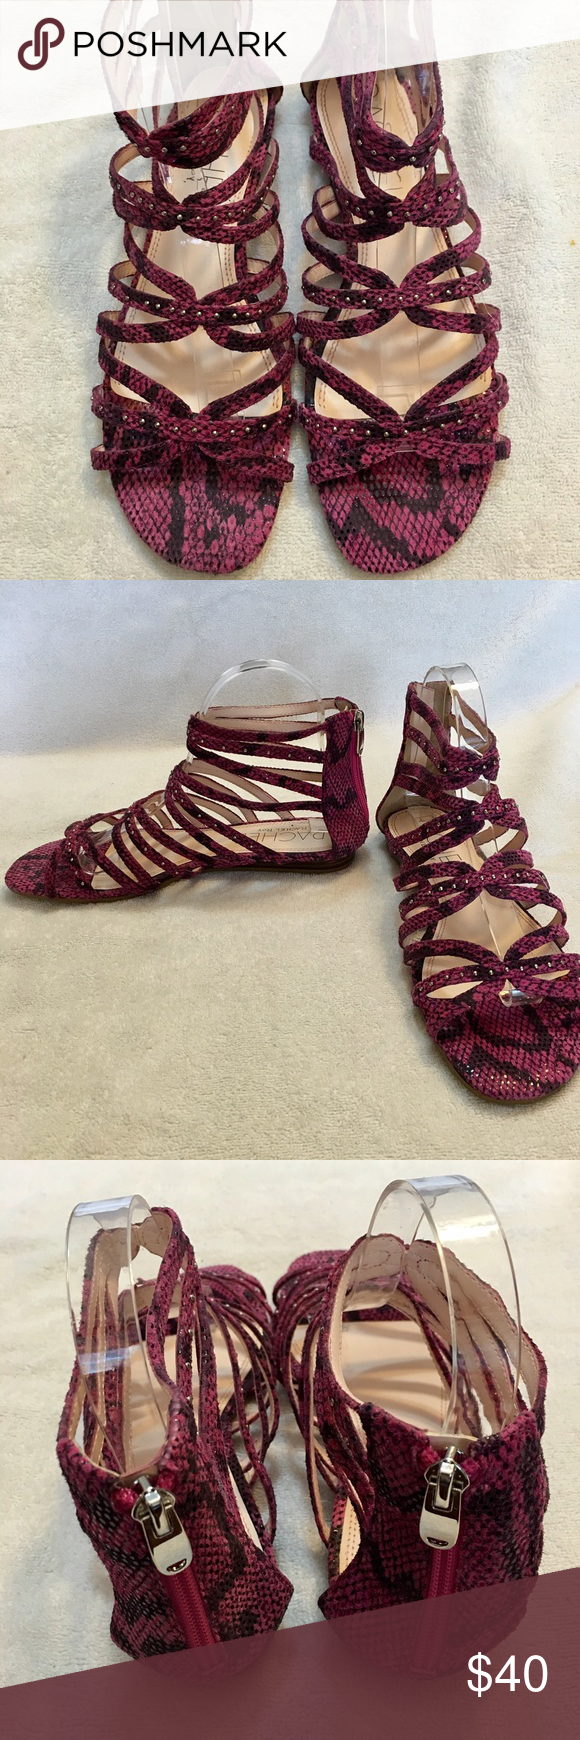 RACHEL ROY Gladiator Sandals, Size 8.5 New (NWOB) Rachel Roy, purple reptile print, gladiator style sandals. Leather upper with man-made sole. Size 8.5 (could probably fit a size 9, too). Never worn, only tried on. They were an impulse buy, but a little too big for me. Purchased on sale for $89 +tax. Rachel Roy Shoes Sandals